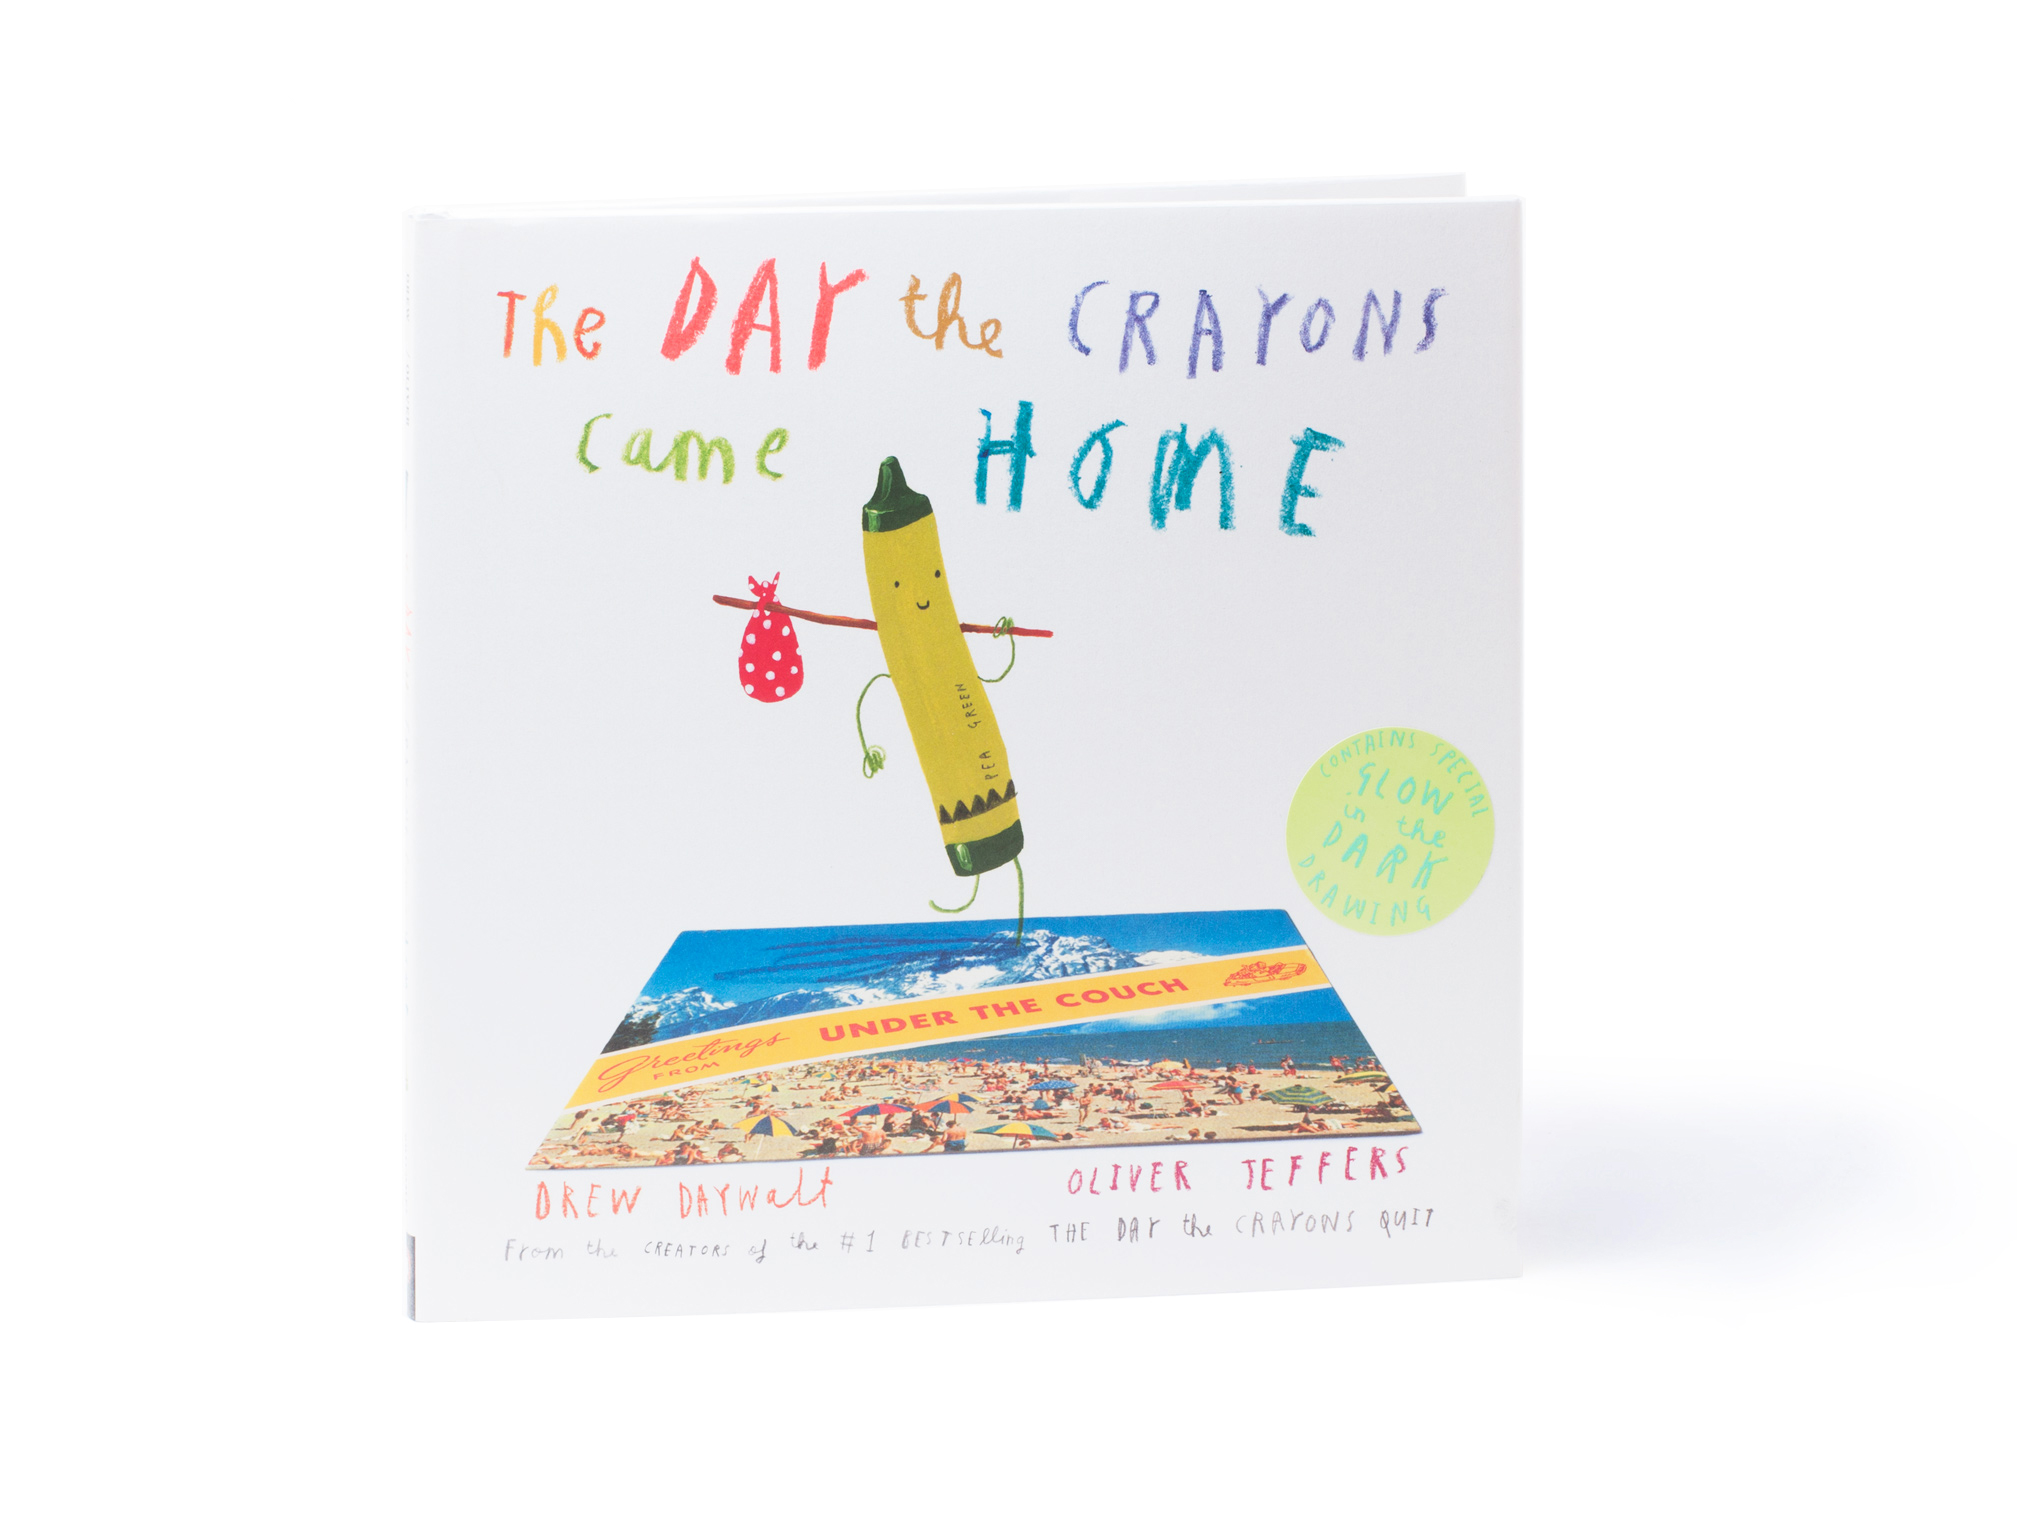 CRAYONS-CAME-HOME(edited).jpg